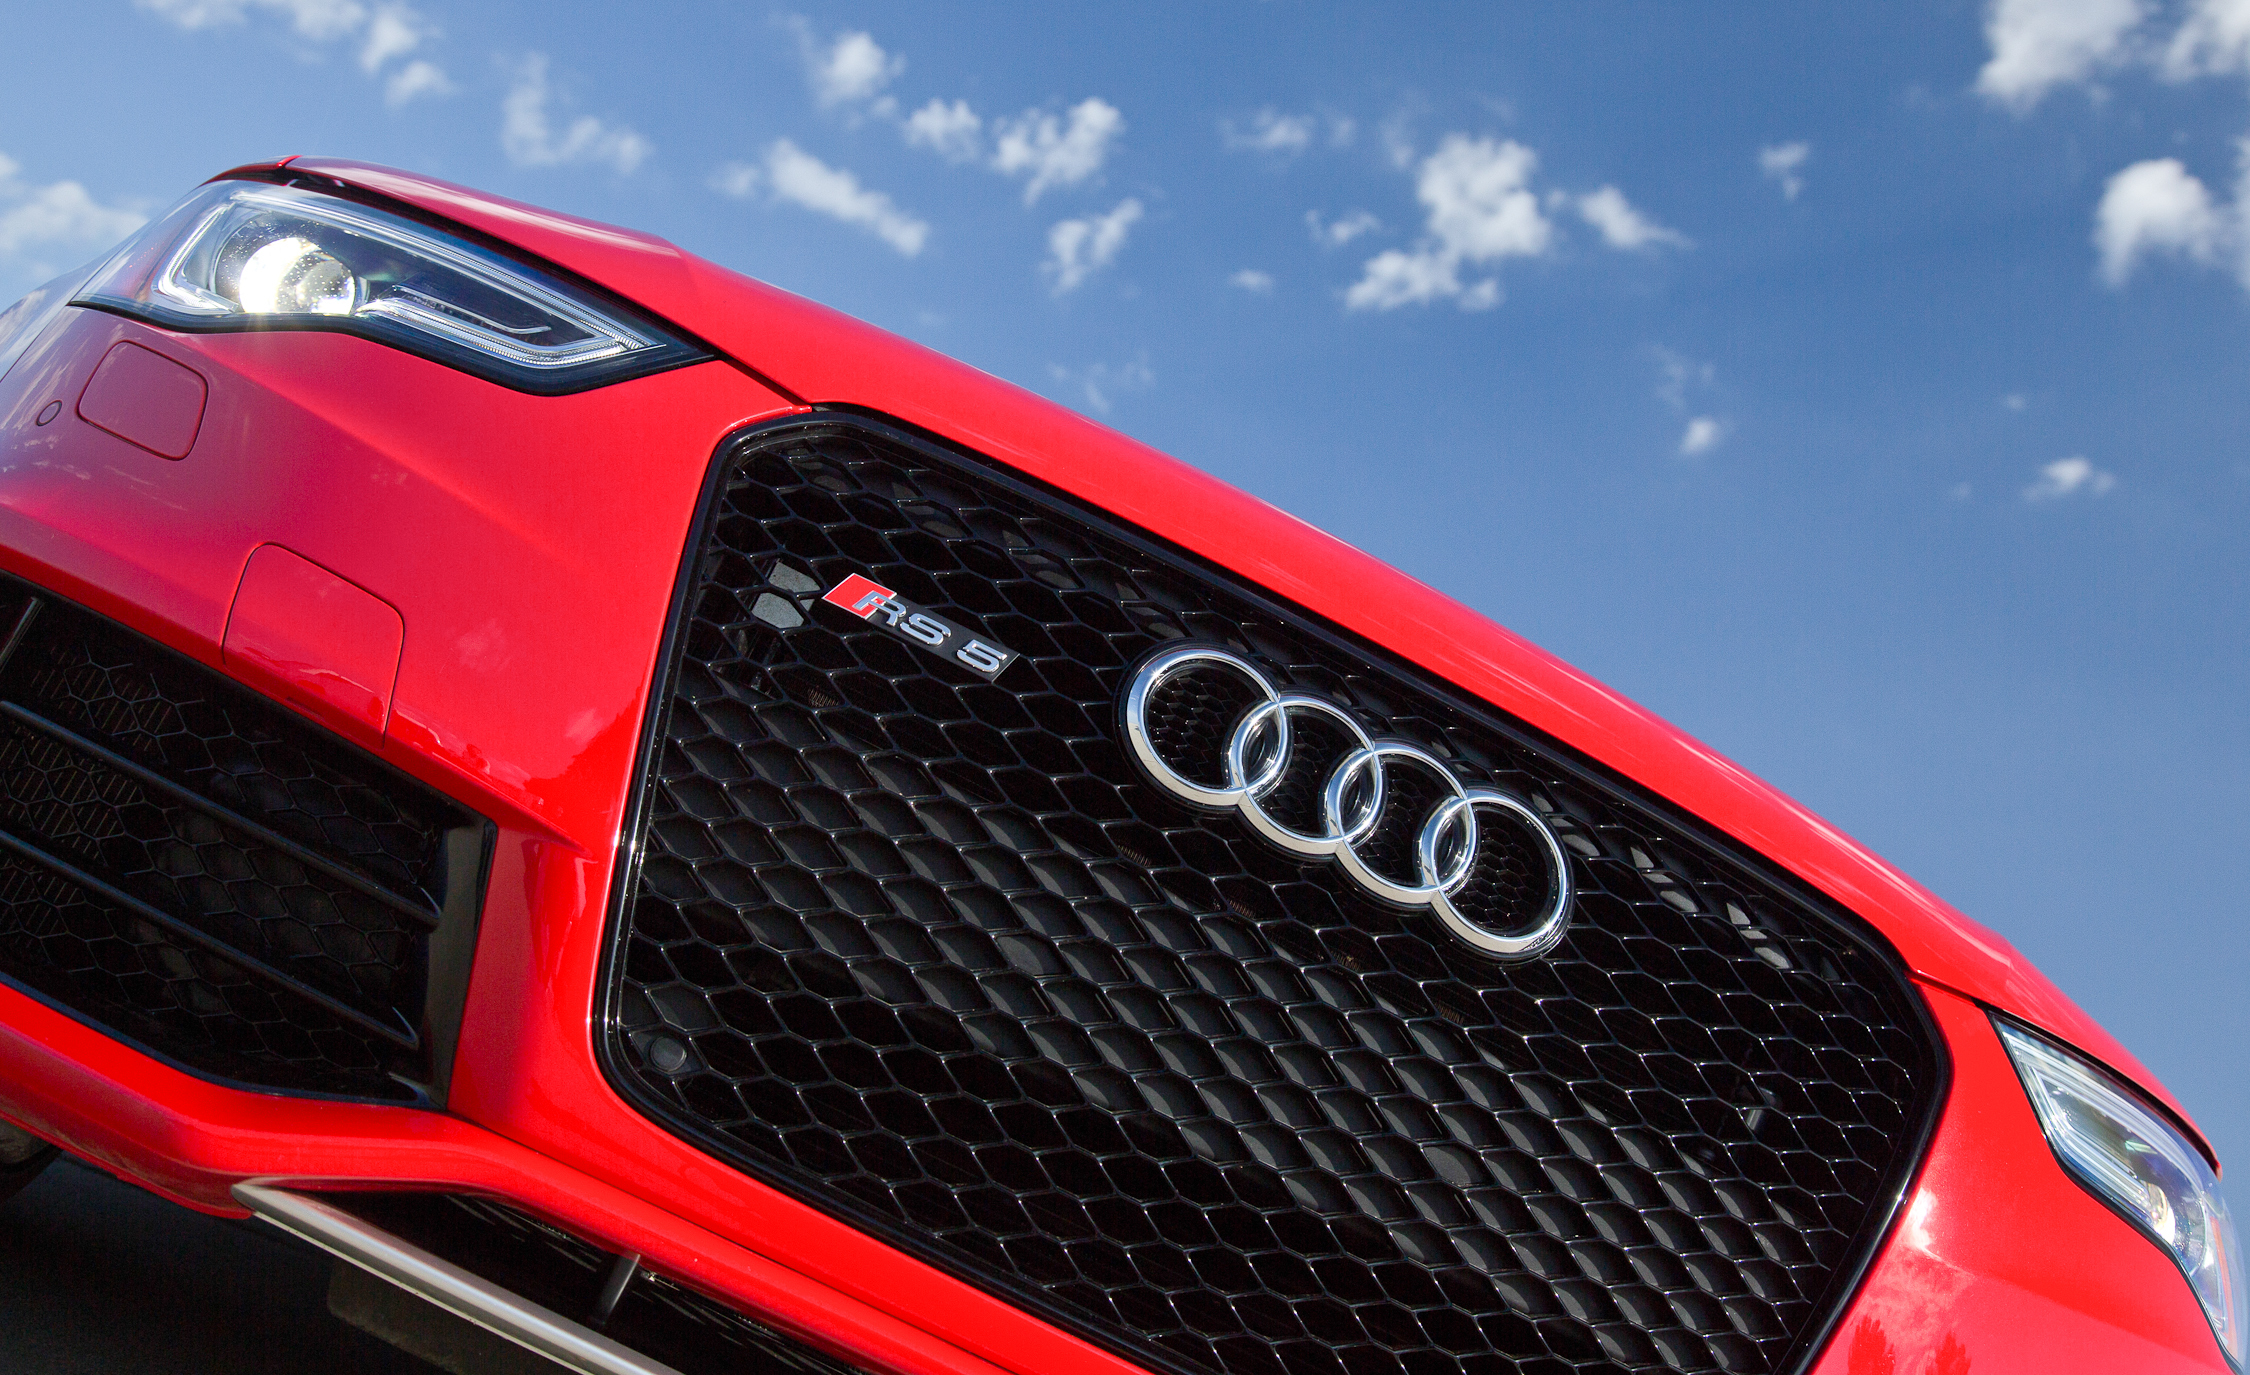 2013 Audi RS 5 Exterior View Grille (Photo 10 of 41)